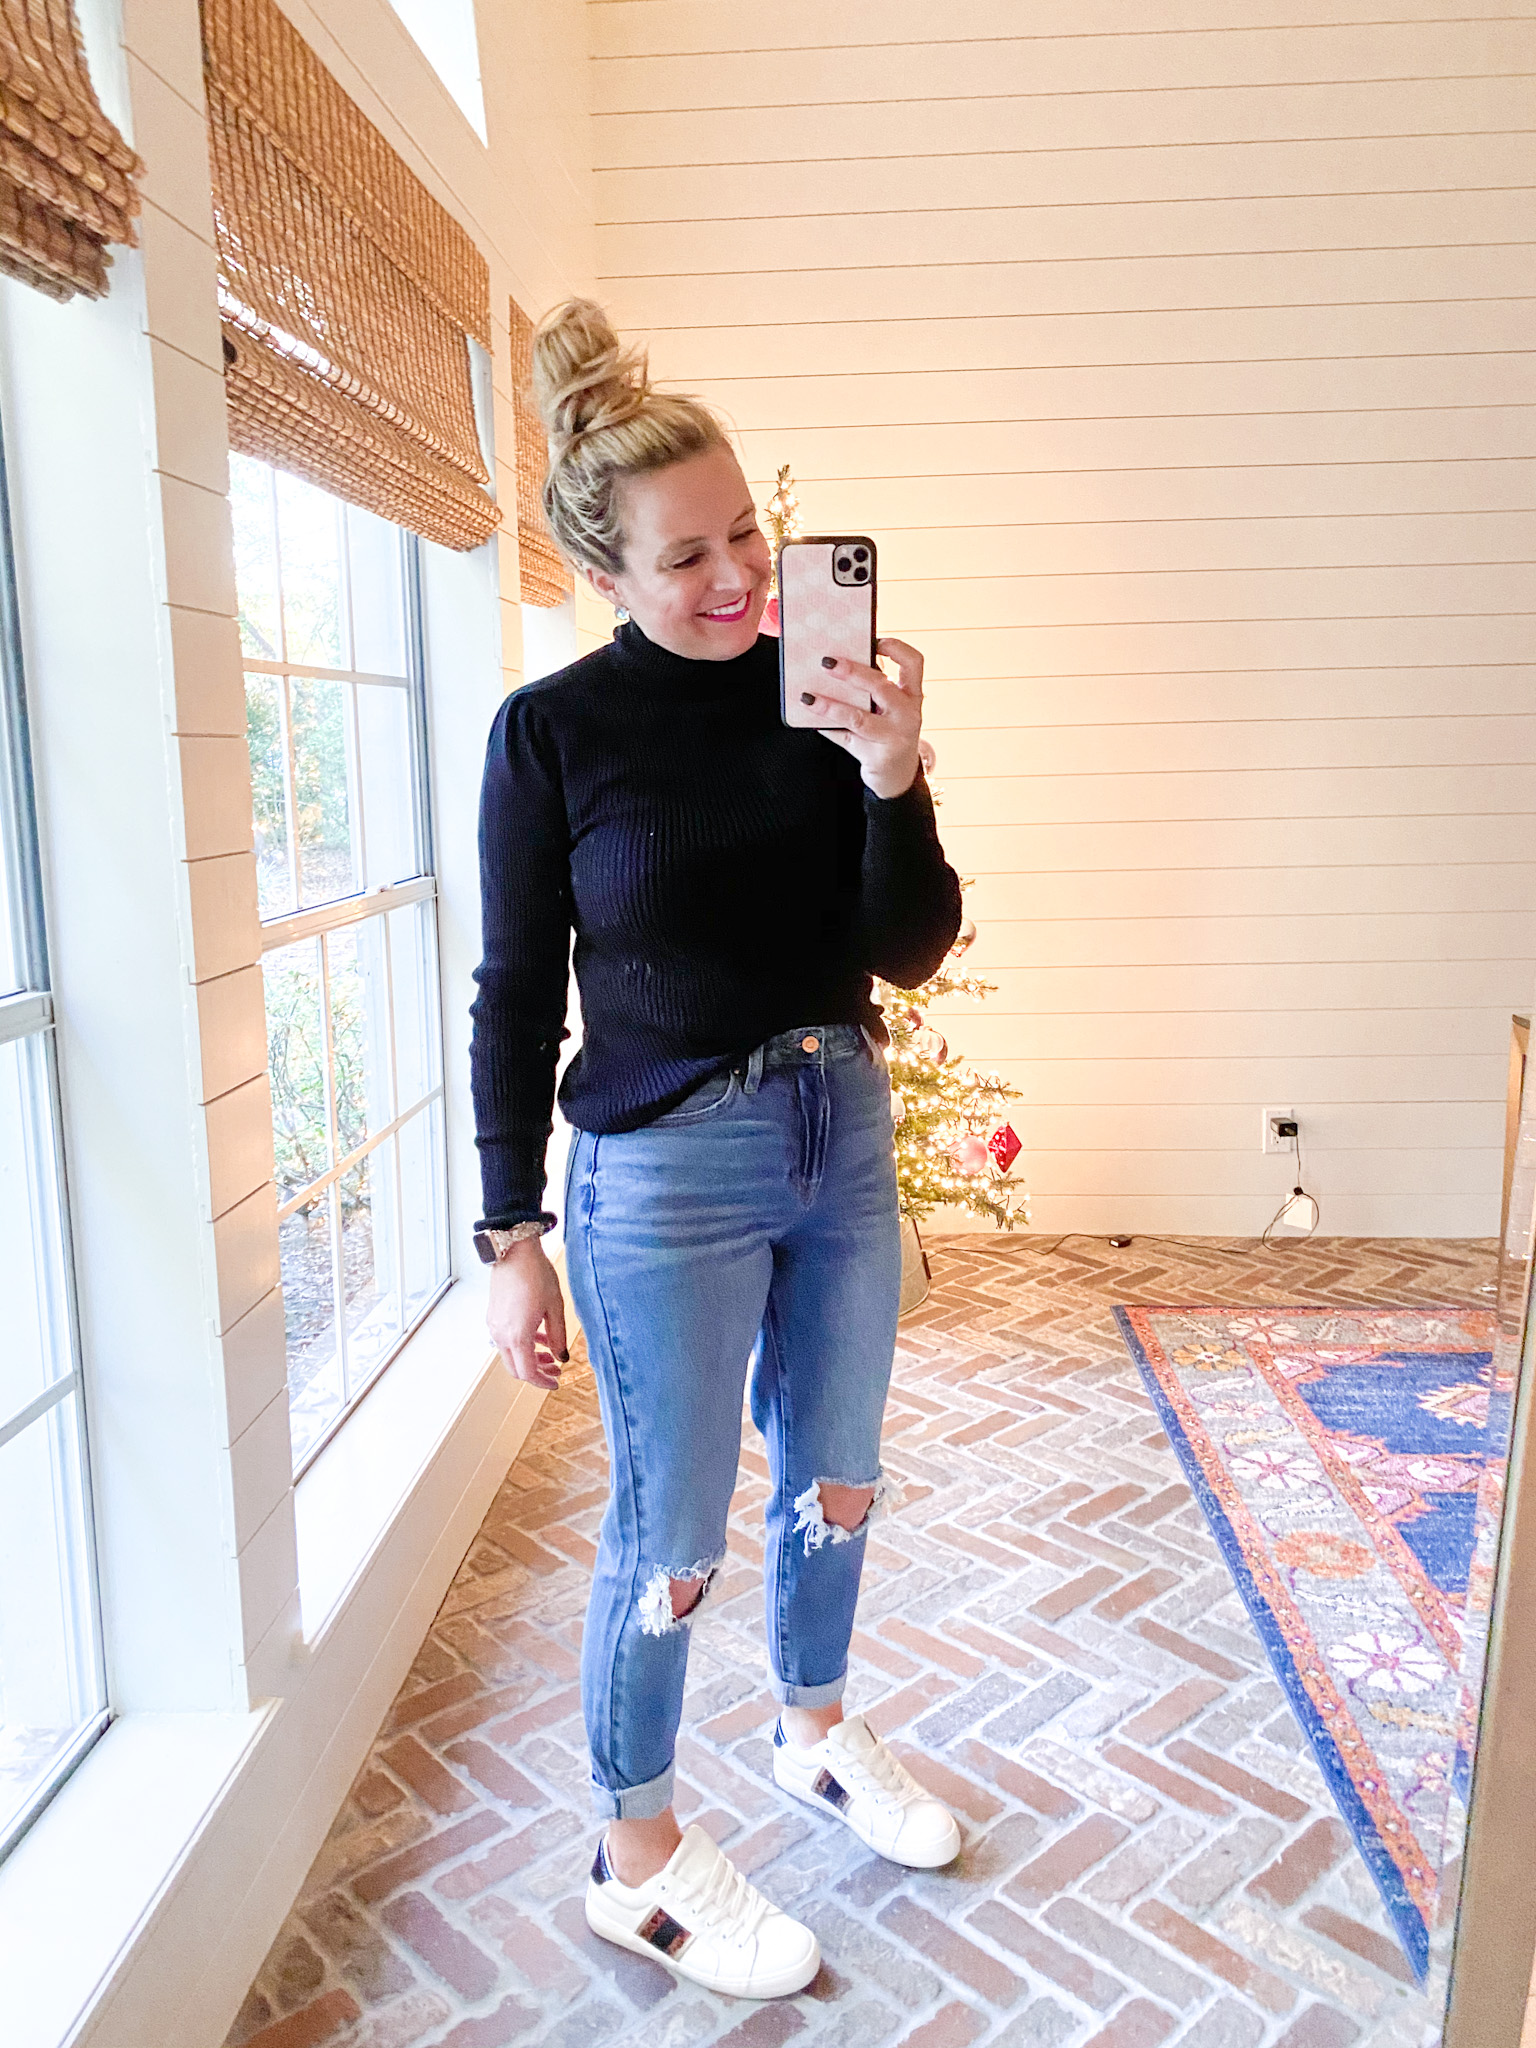 Walmart Womens Clothes by popular Houston fashion blog, Fancy Ashley: image of a woman wearing a Walmart Scoop Women's Mock Neck Top with Ruched Sleeves, Walmart No Boundaries Juniors' Mom Jeans, and Walmart white sneakers.